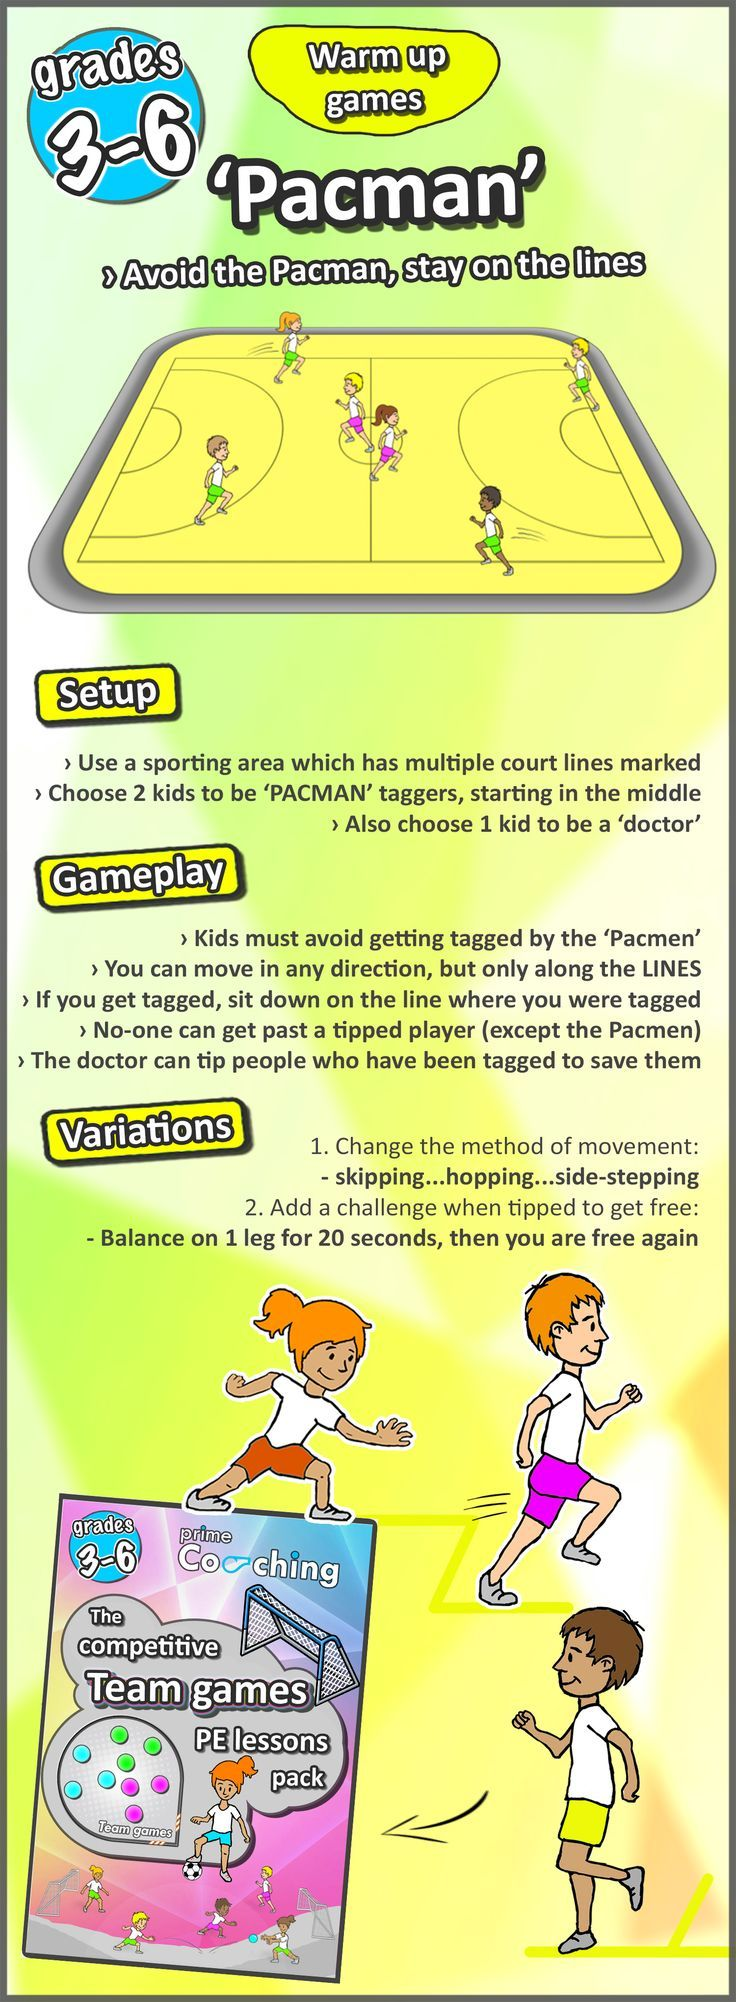 8 great PE warmup games Physical education games, Warm